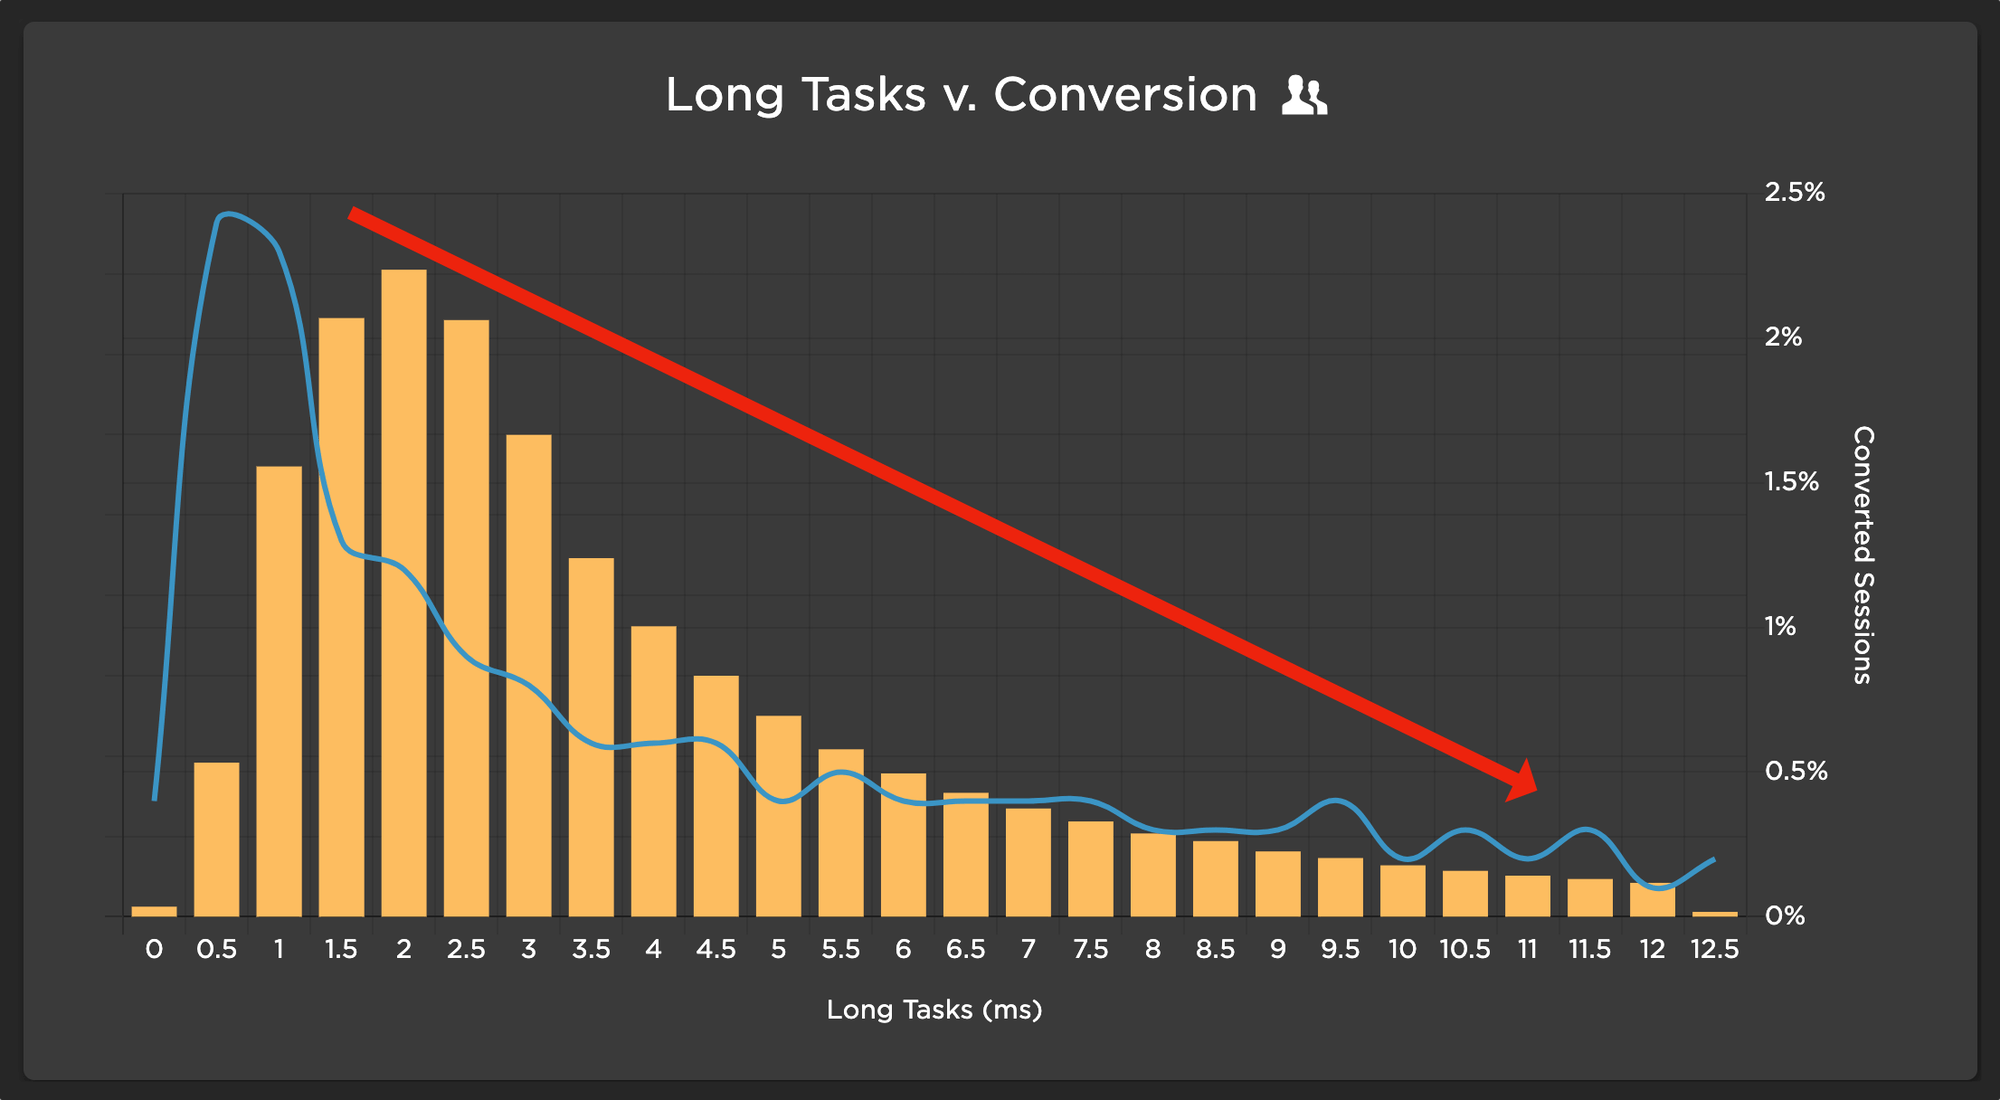 Chart showing strong correlation between long tasks and conversion